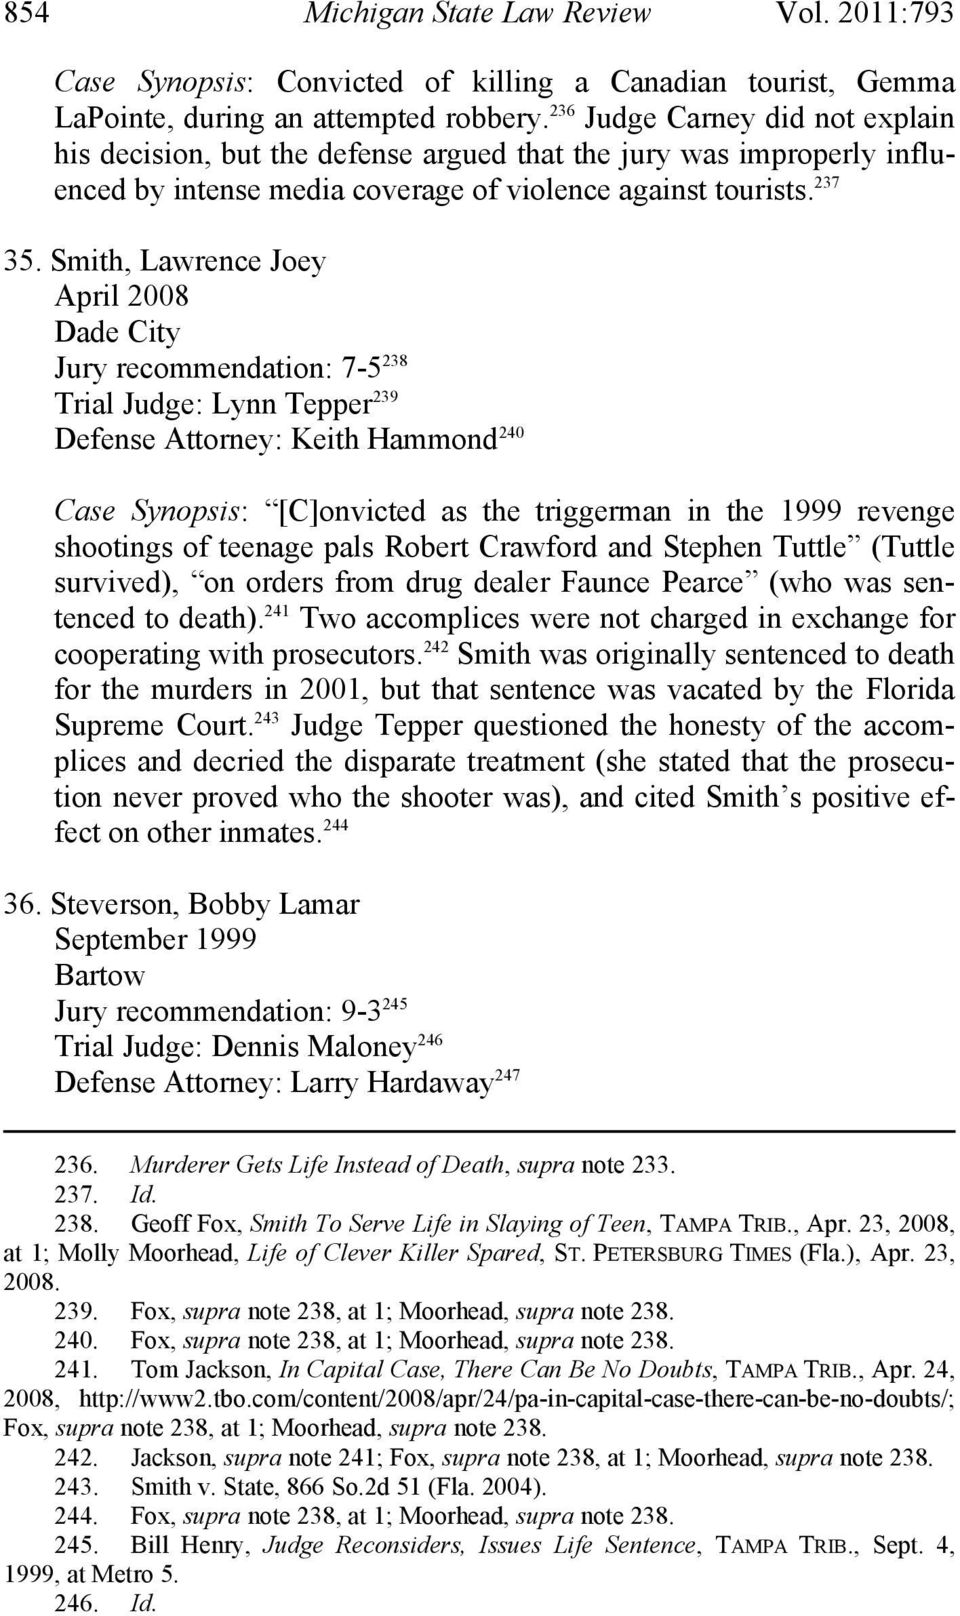 Smith, Lawrence Joey April 2008 Dade City Jury recommendation: 7-5 238 Trial Judge: Lynn Tepper 239 Defense Attorney: Keith Hammond 240 Case Synopsis: [C]onvicted as the triggerman in the 1999